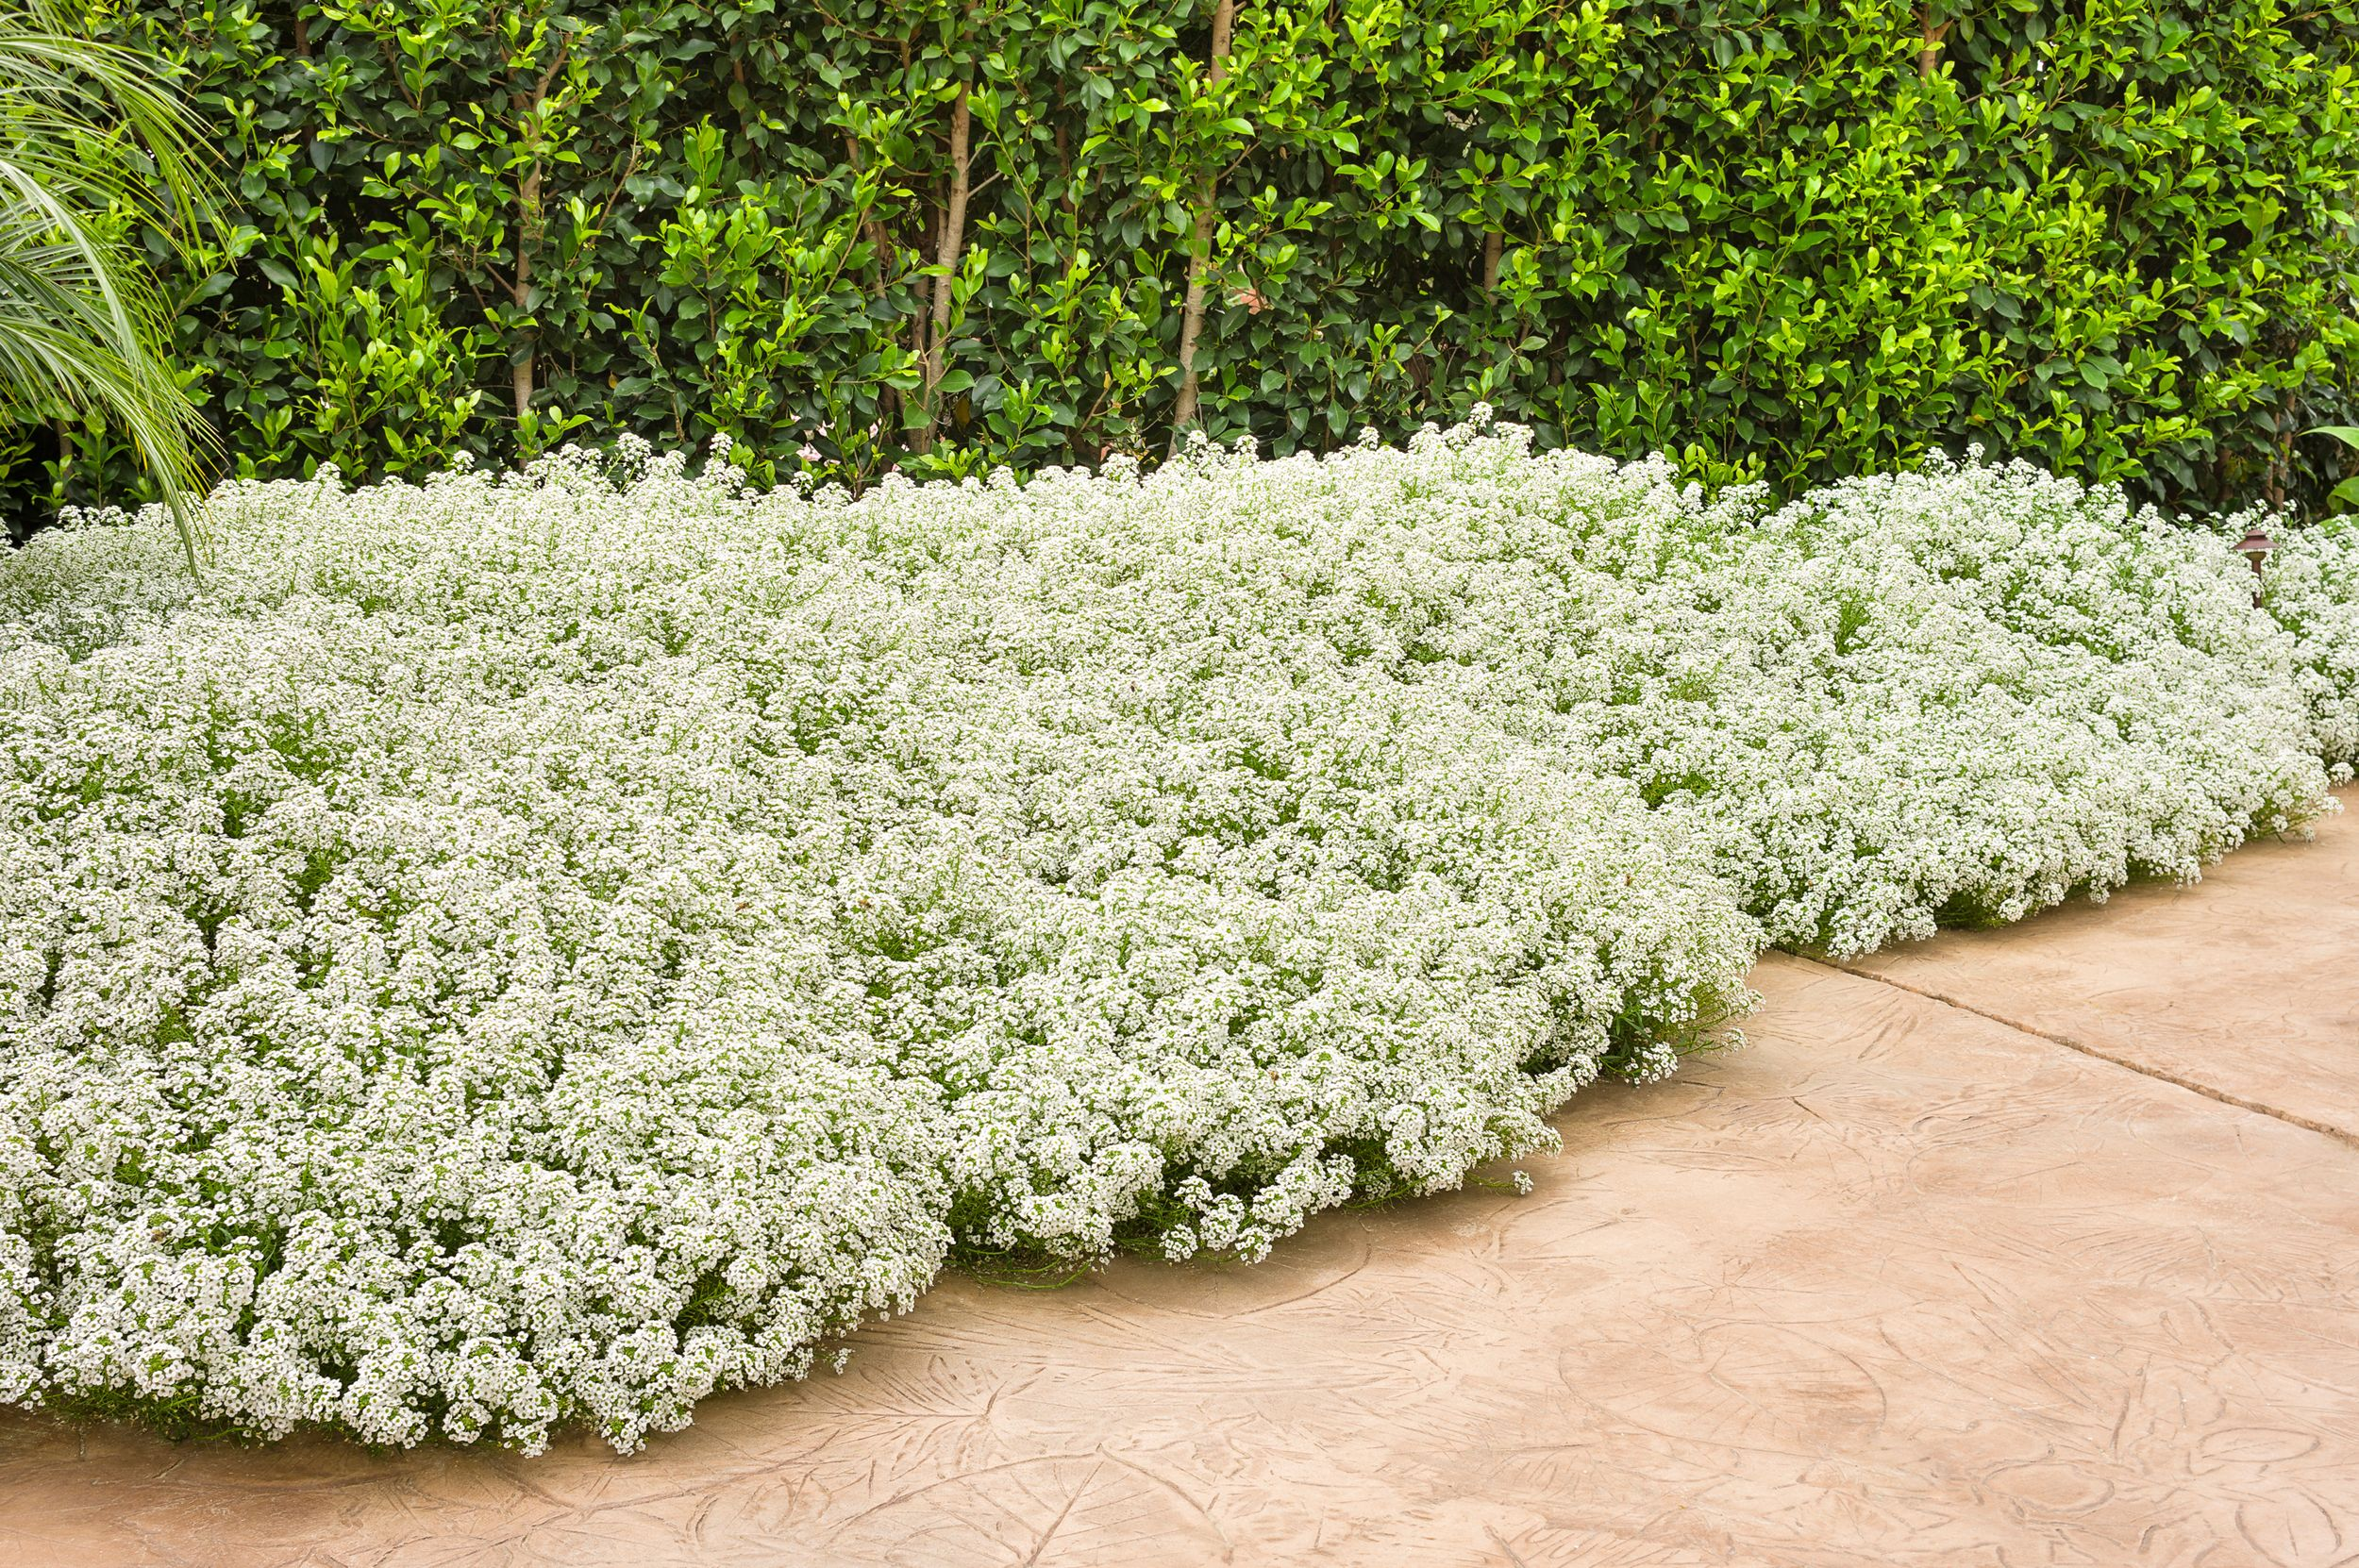 10 most fragrant outdoor flowers best smelling plants for garden